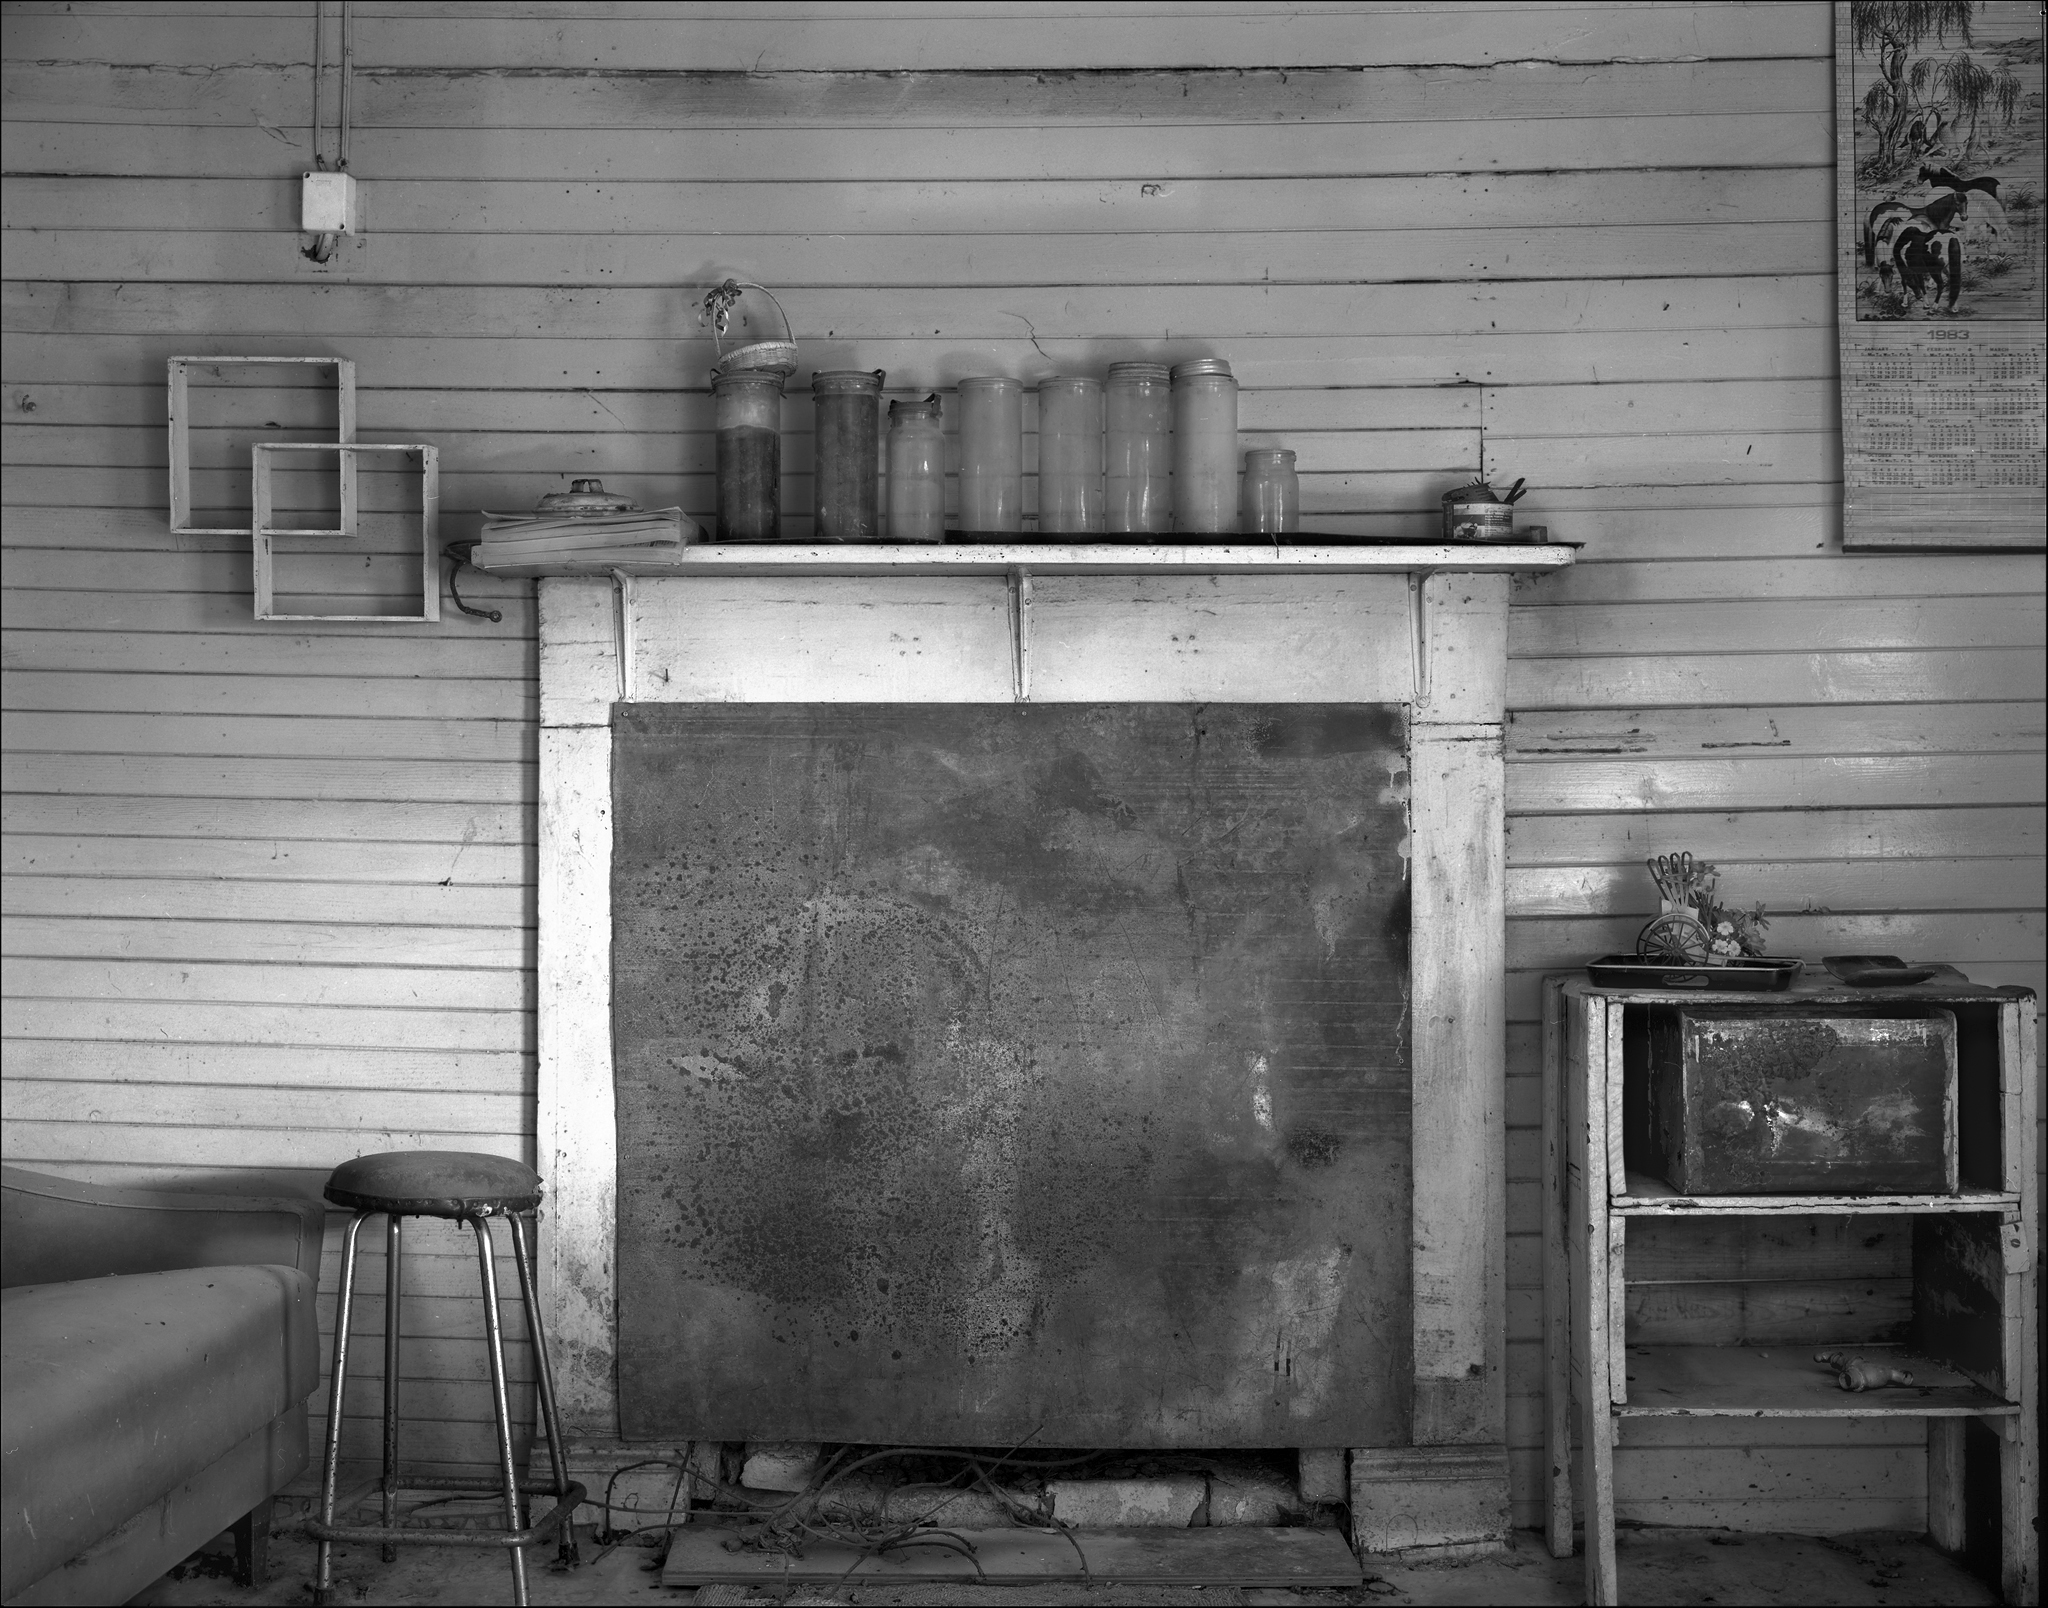 Cashen's Hut project fireplace